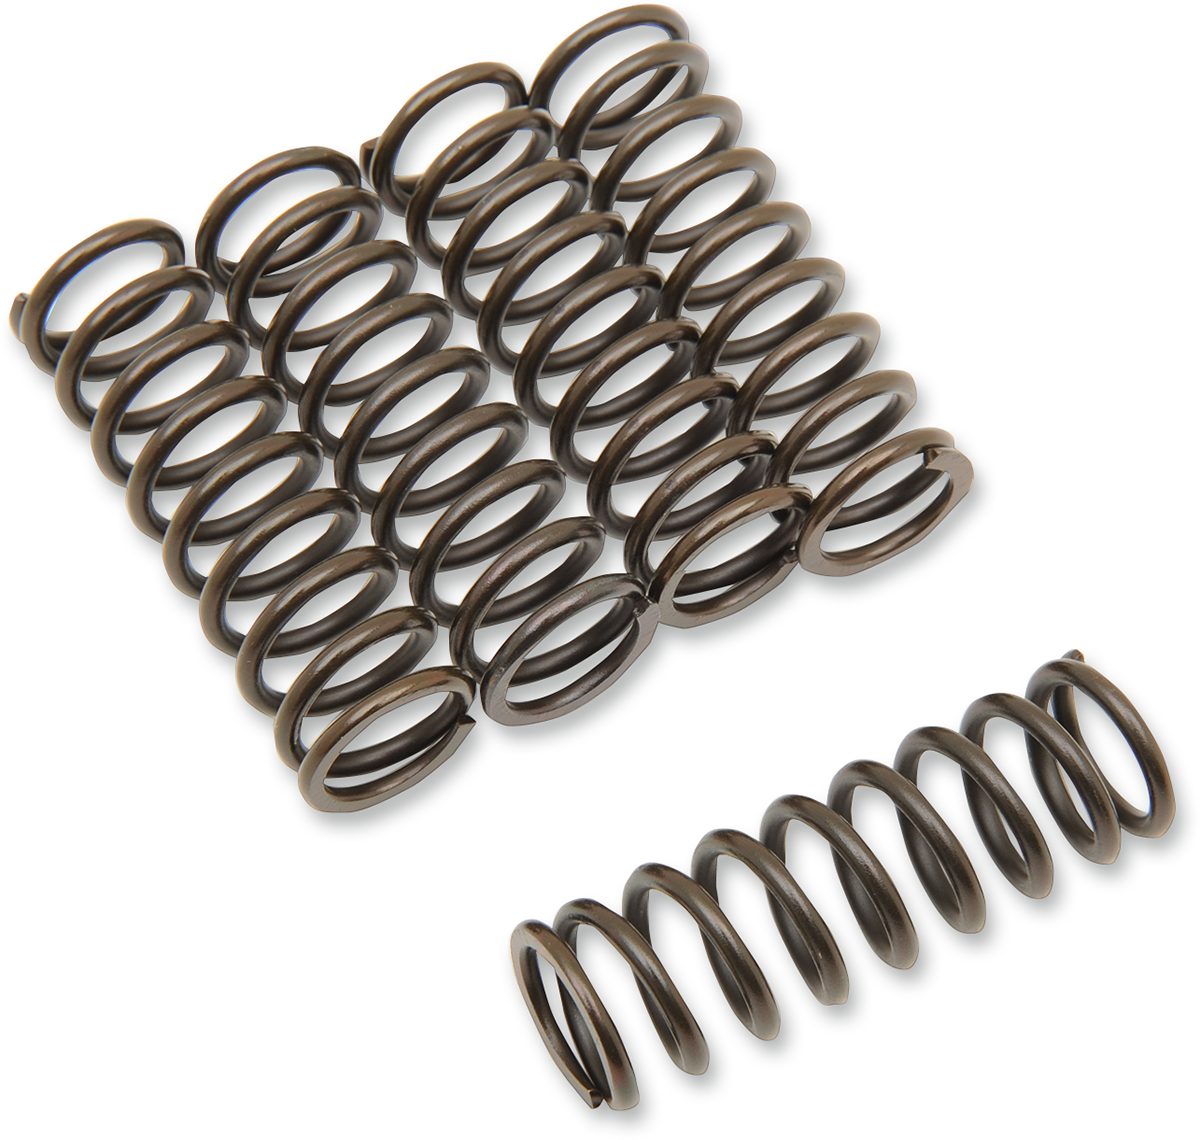 BARNETT CLUTCH KITS, DISCS AND SPRINGS CLUTCH SPRING SET KAW